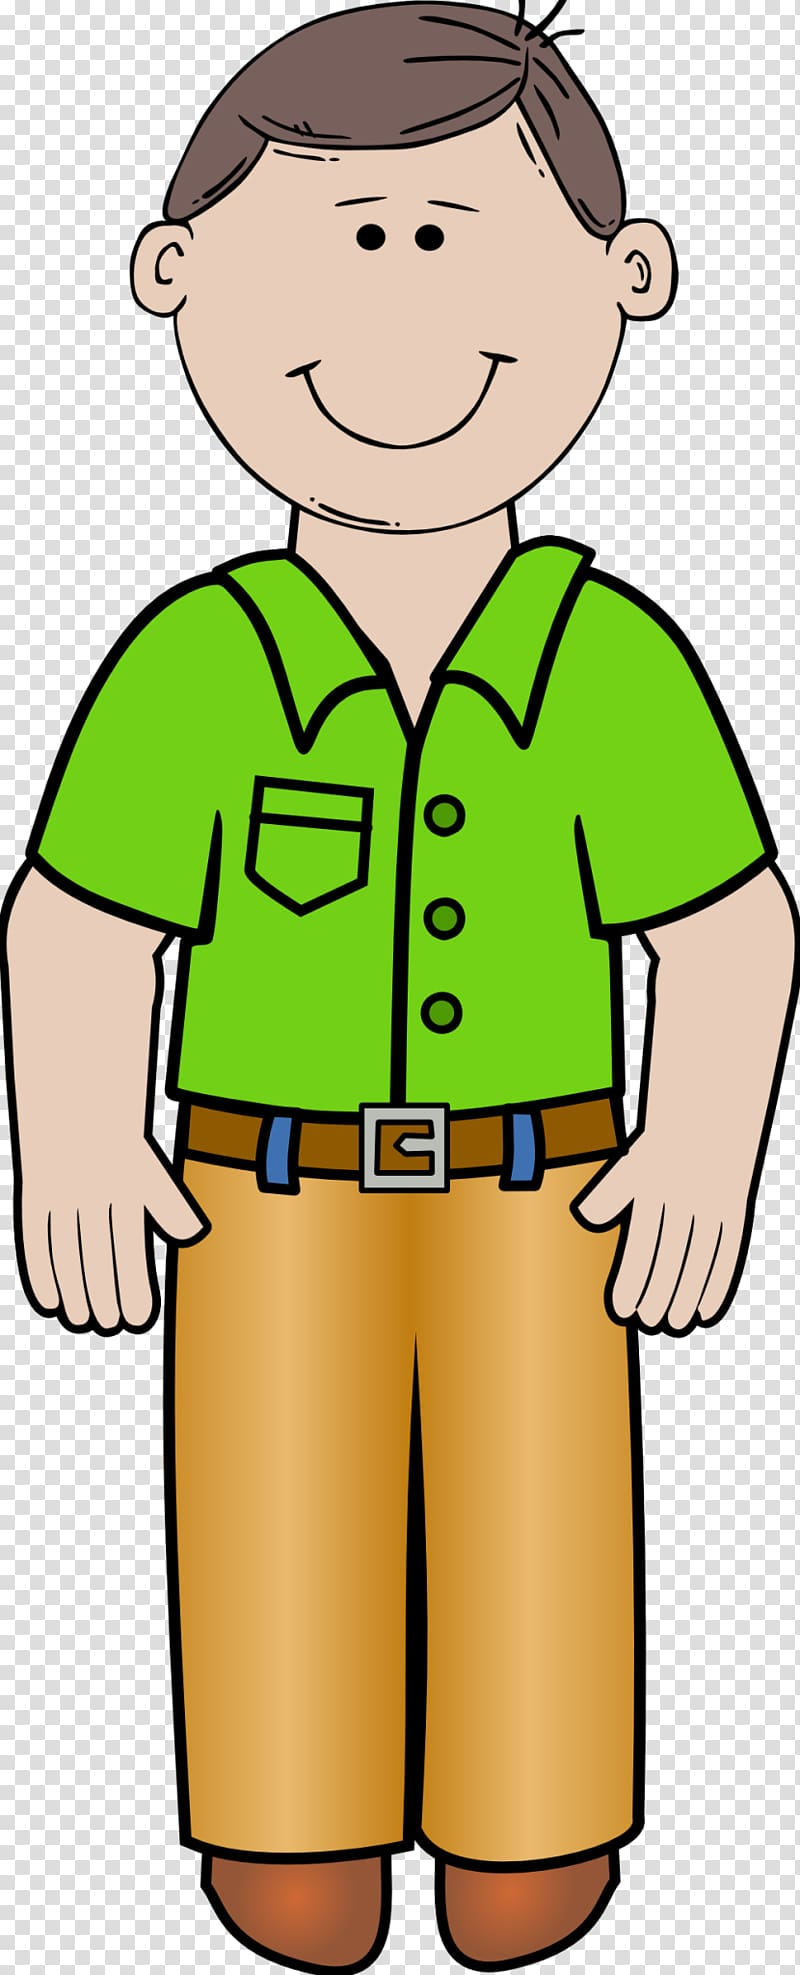 Father clipart human standing. Dad transparent background png